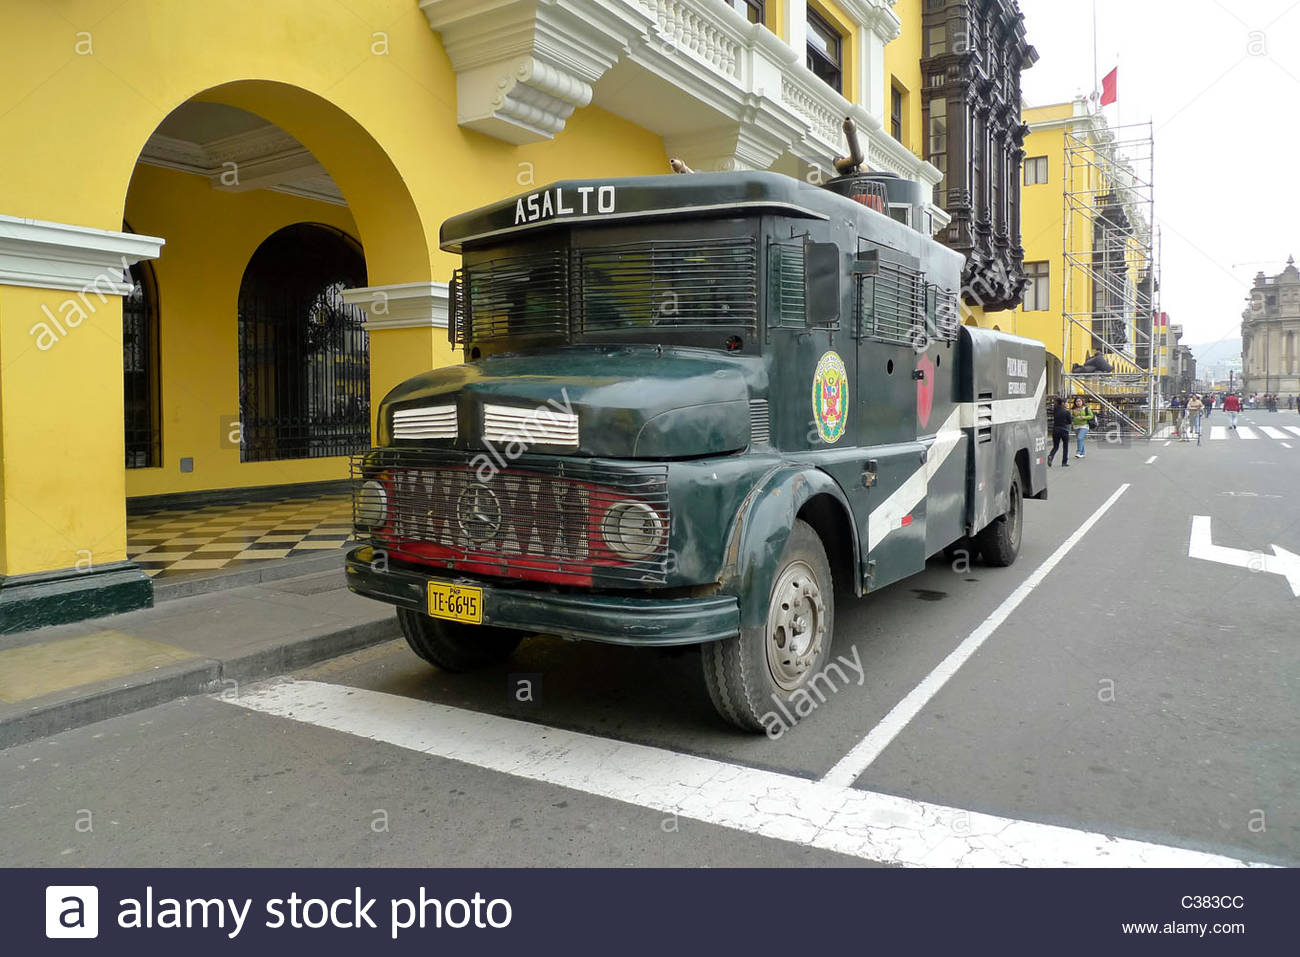 Peruvian armored assault vehicle on the main square (Plaza Mayor) in Lima, Peru. - Stock Image